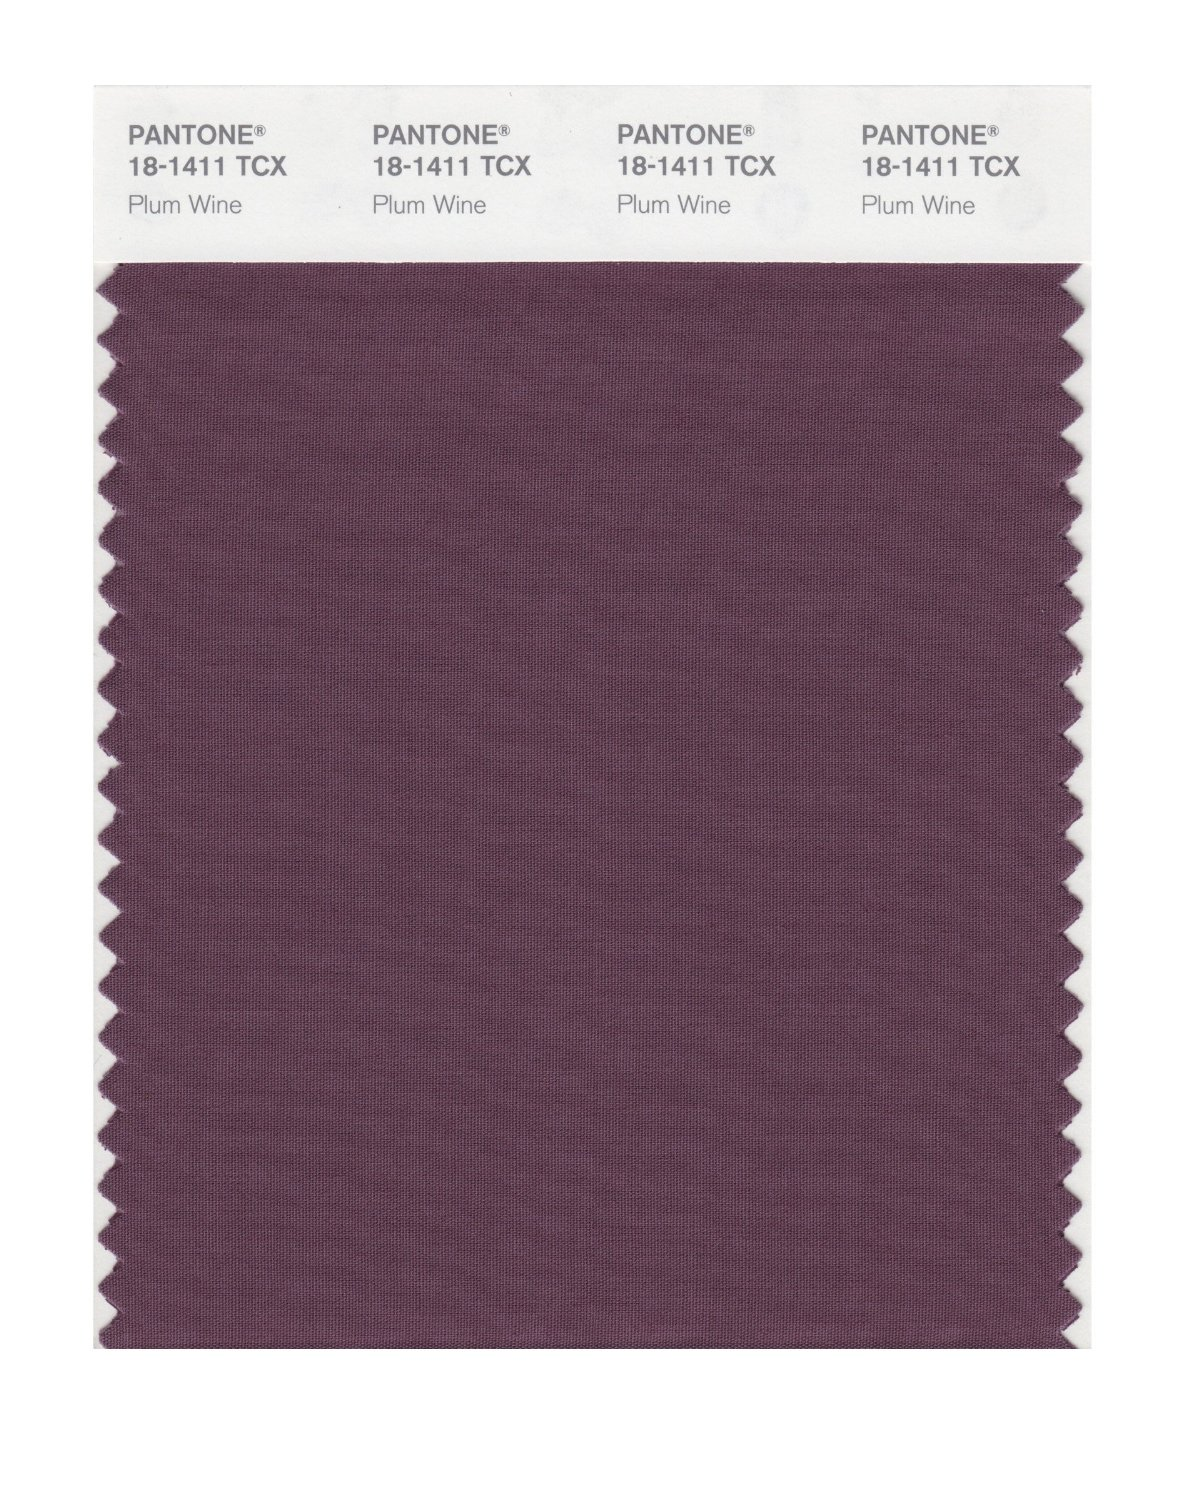 Pantone Smart Swatch 18-1411 Plum Wine